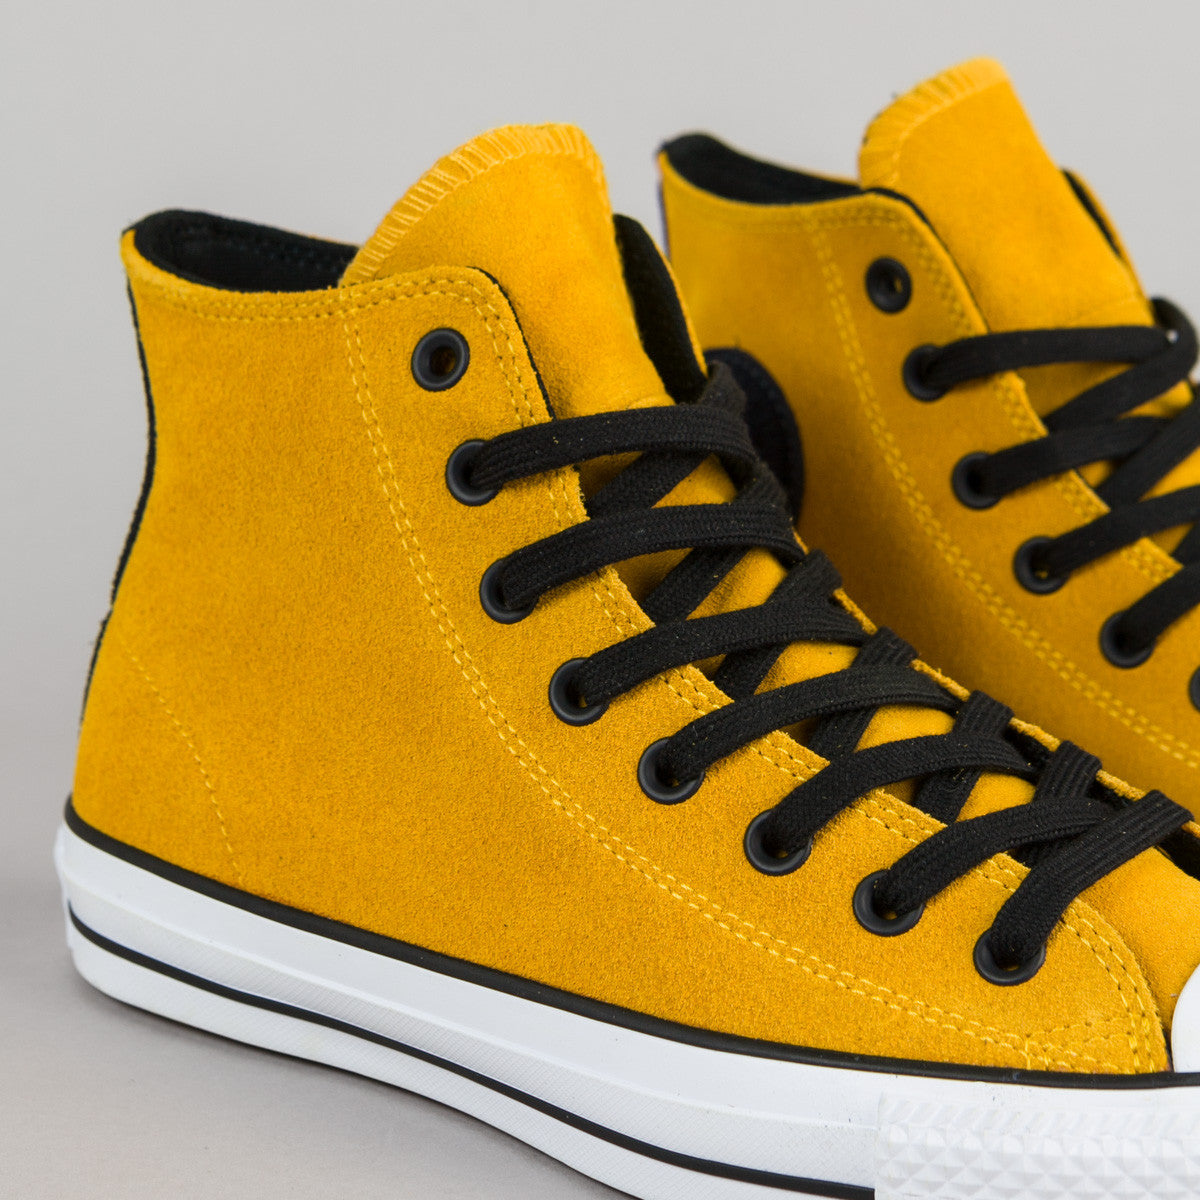 Converse CTAS Pro Suede Hi Shoes - Yellow / Black / Obsidian